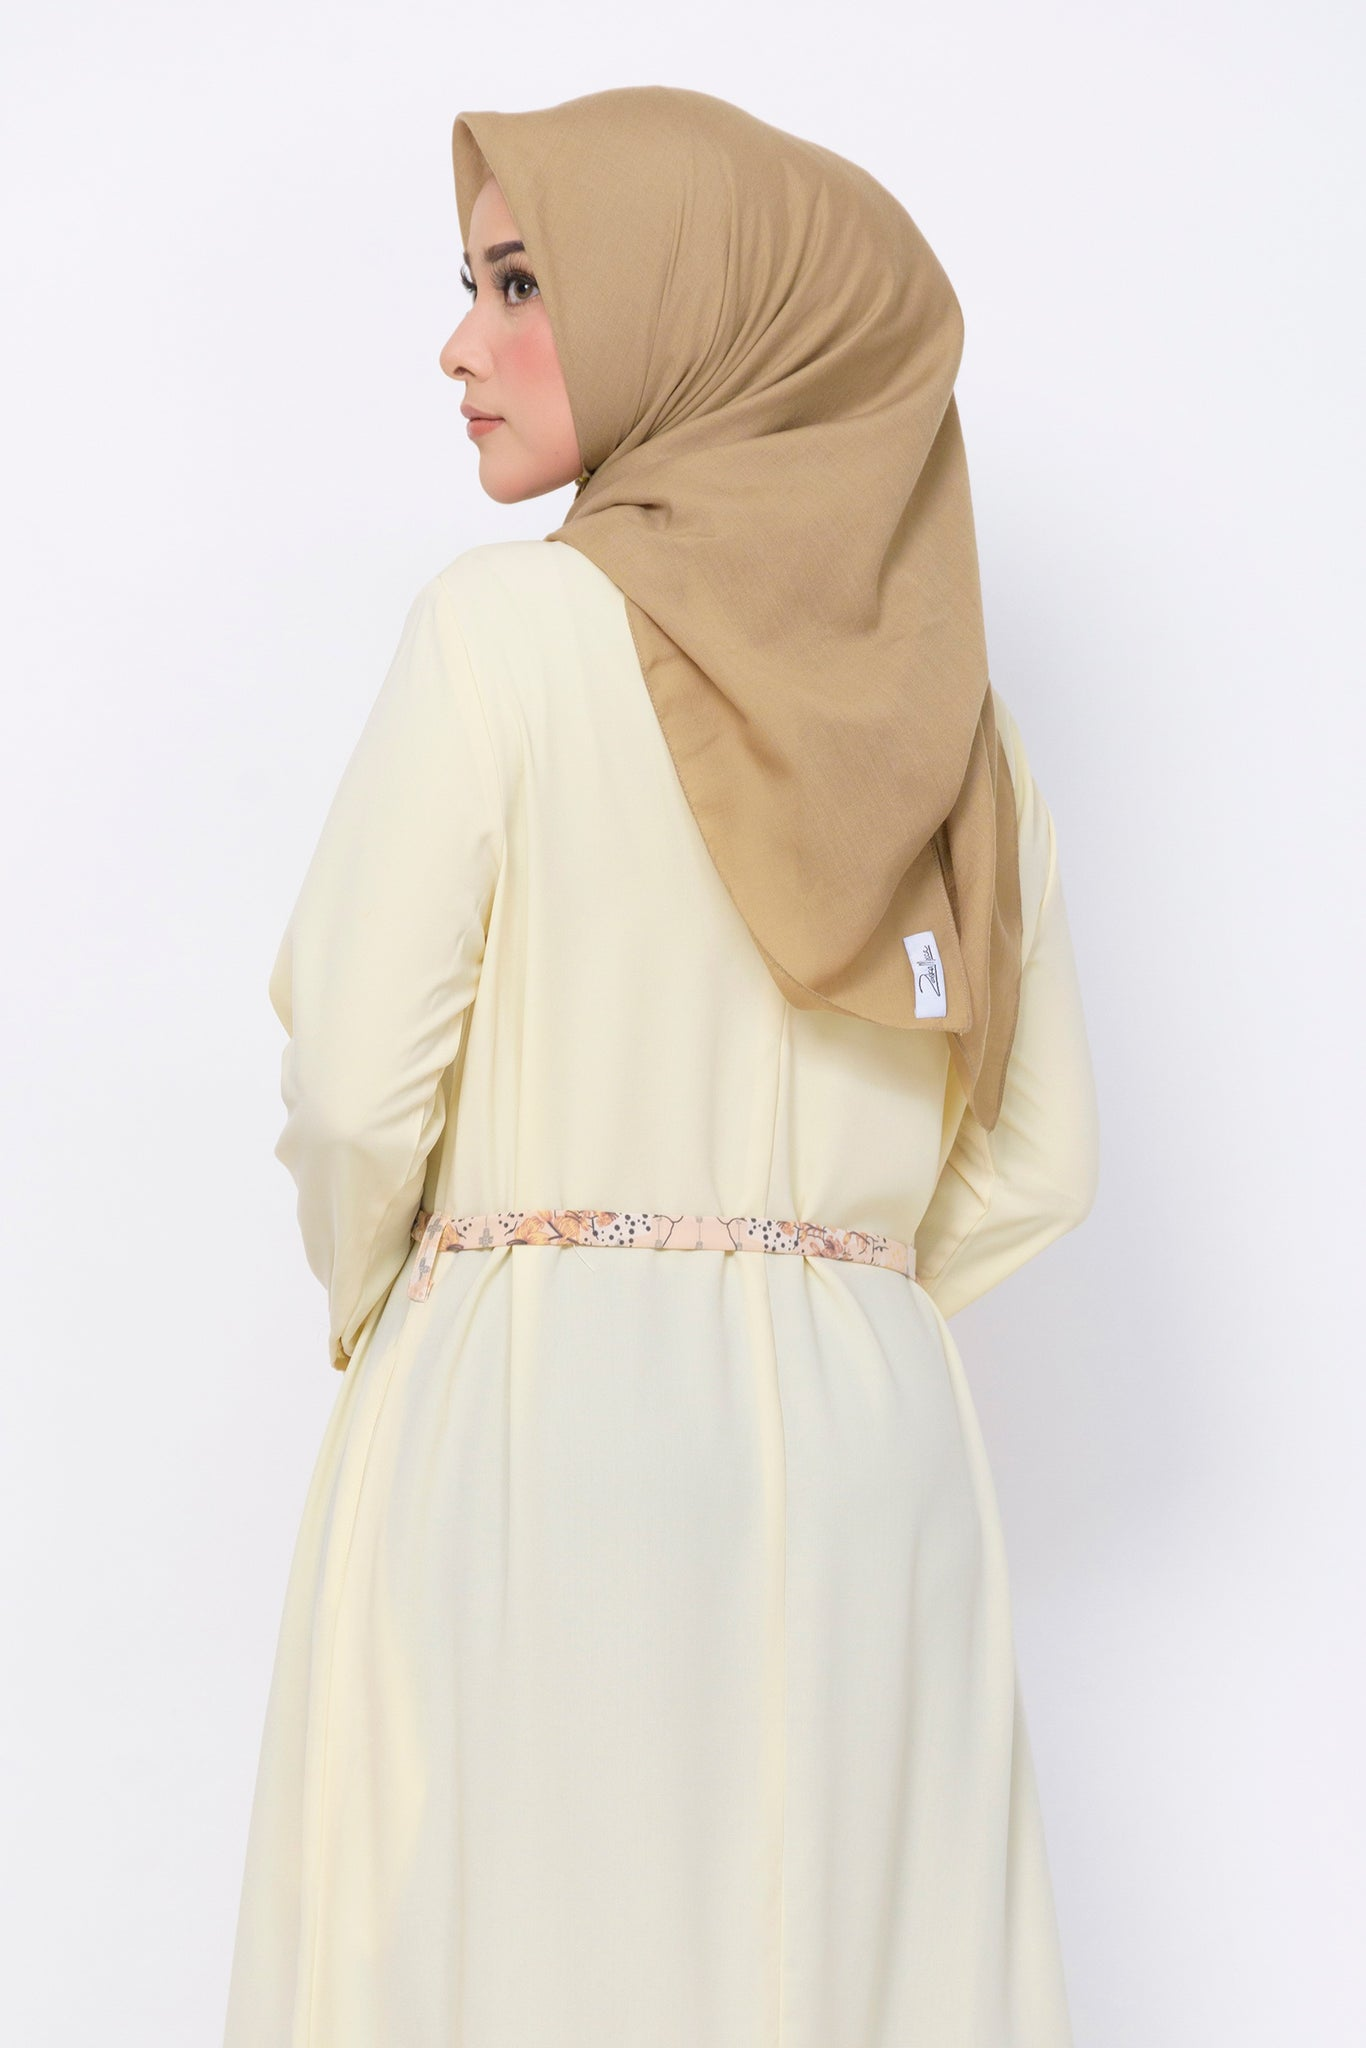 ZM - Kaici Cream Dress - Jelita Indonesia - Edisi Pulau Bangka